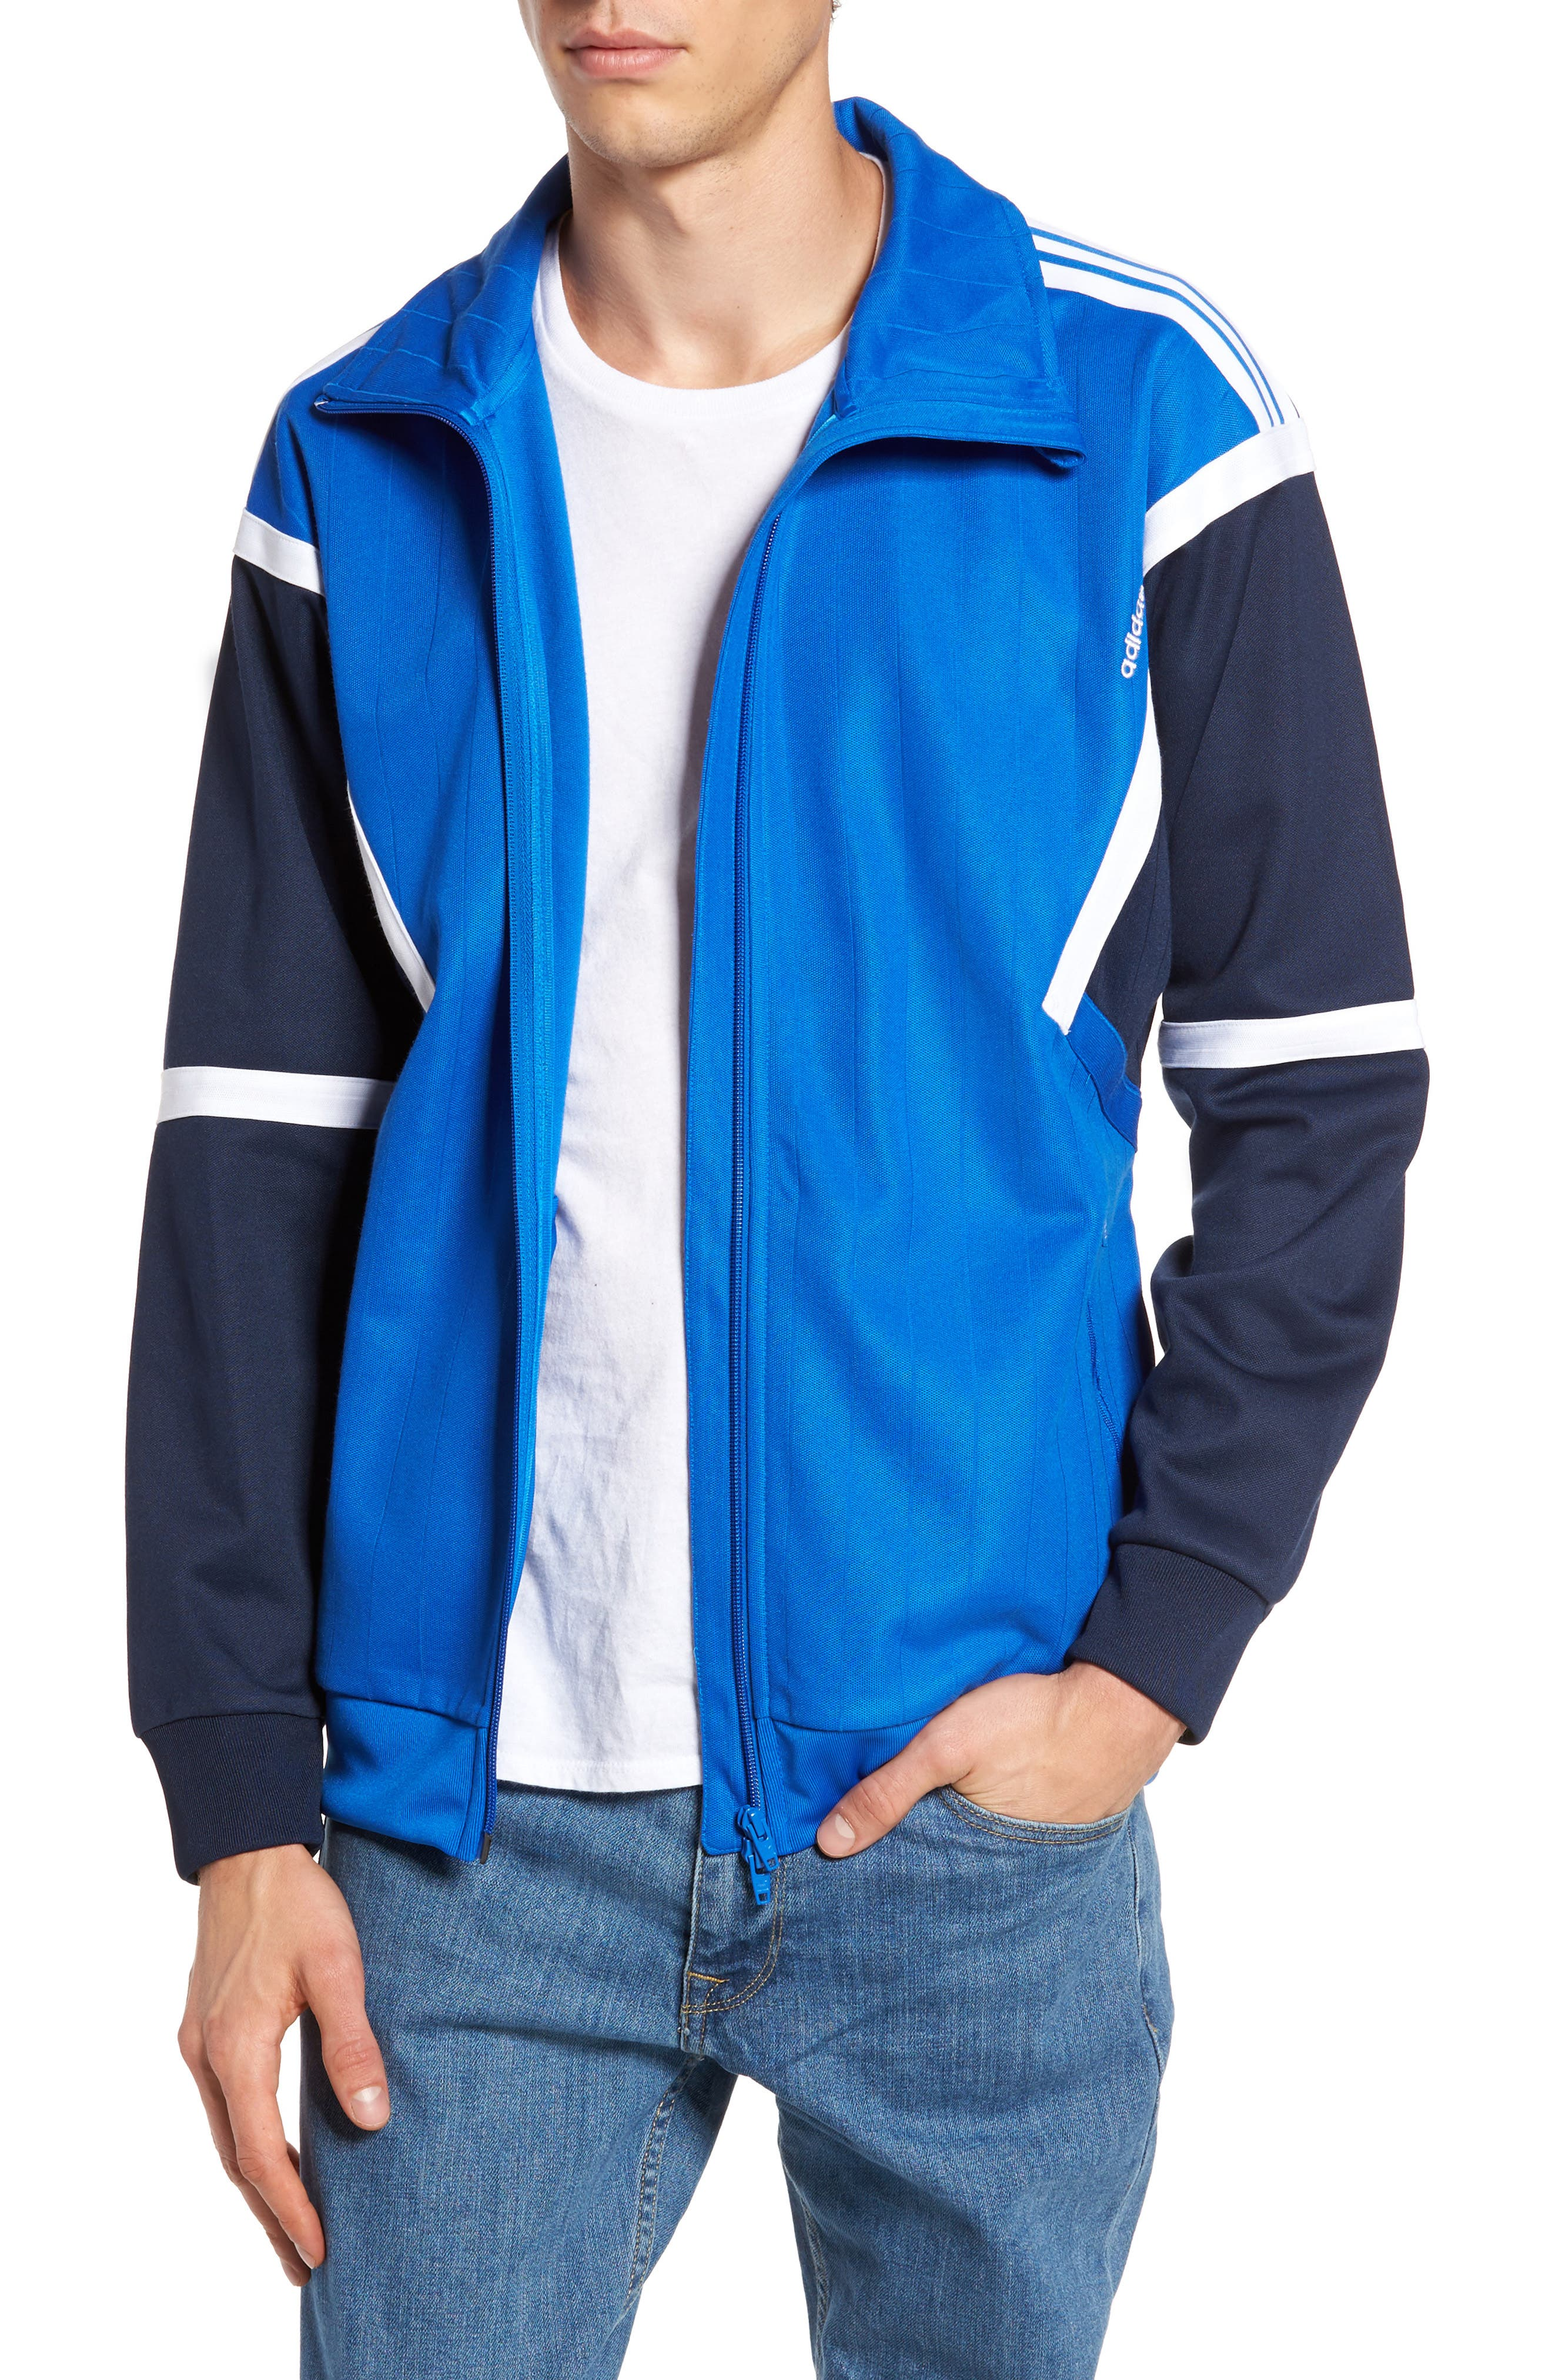 Water Resistant Training Track Jacket,                         Main,                         color, Blue